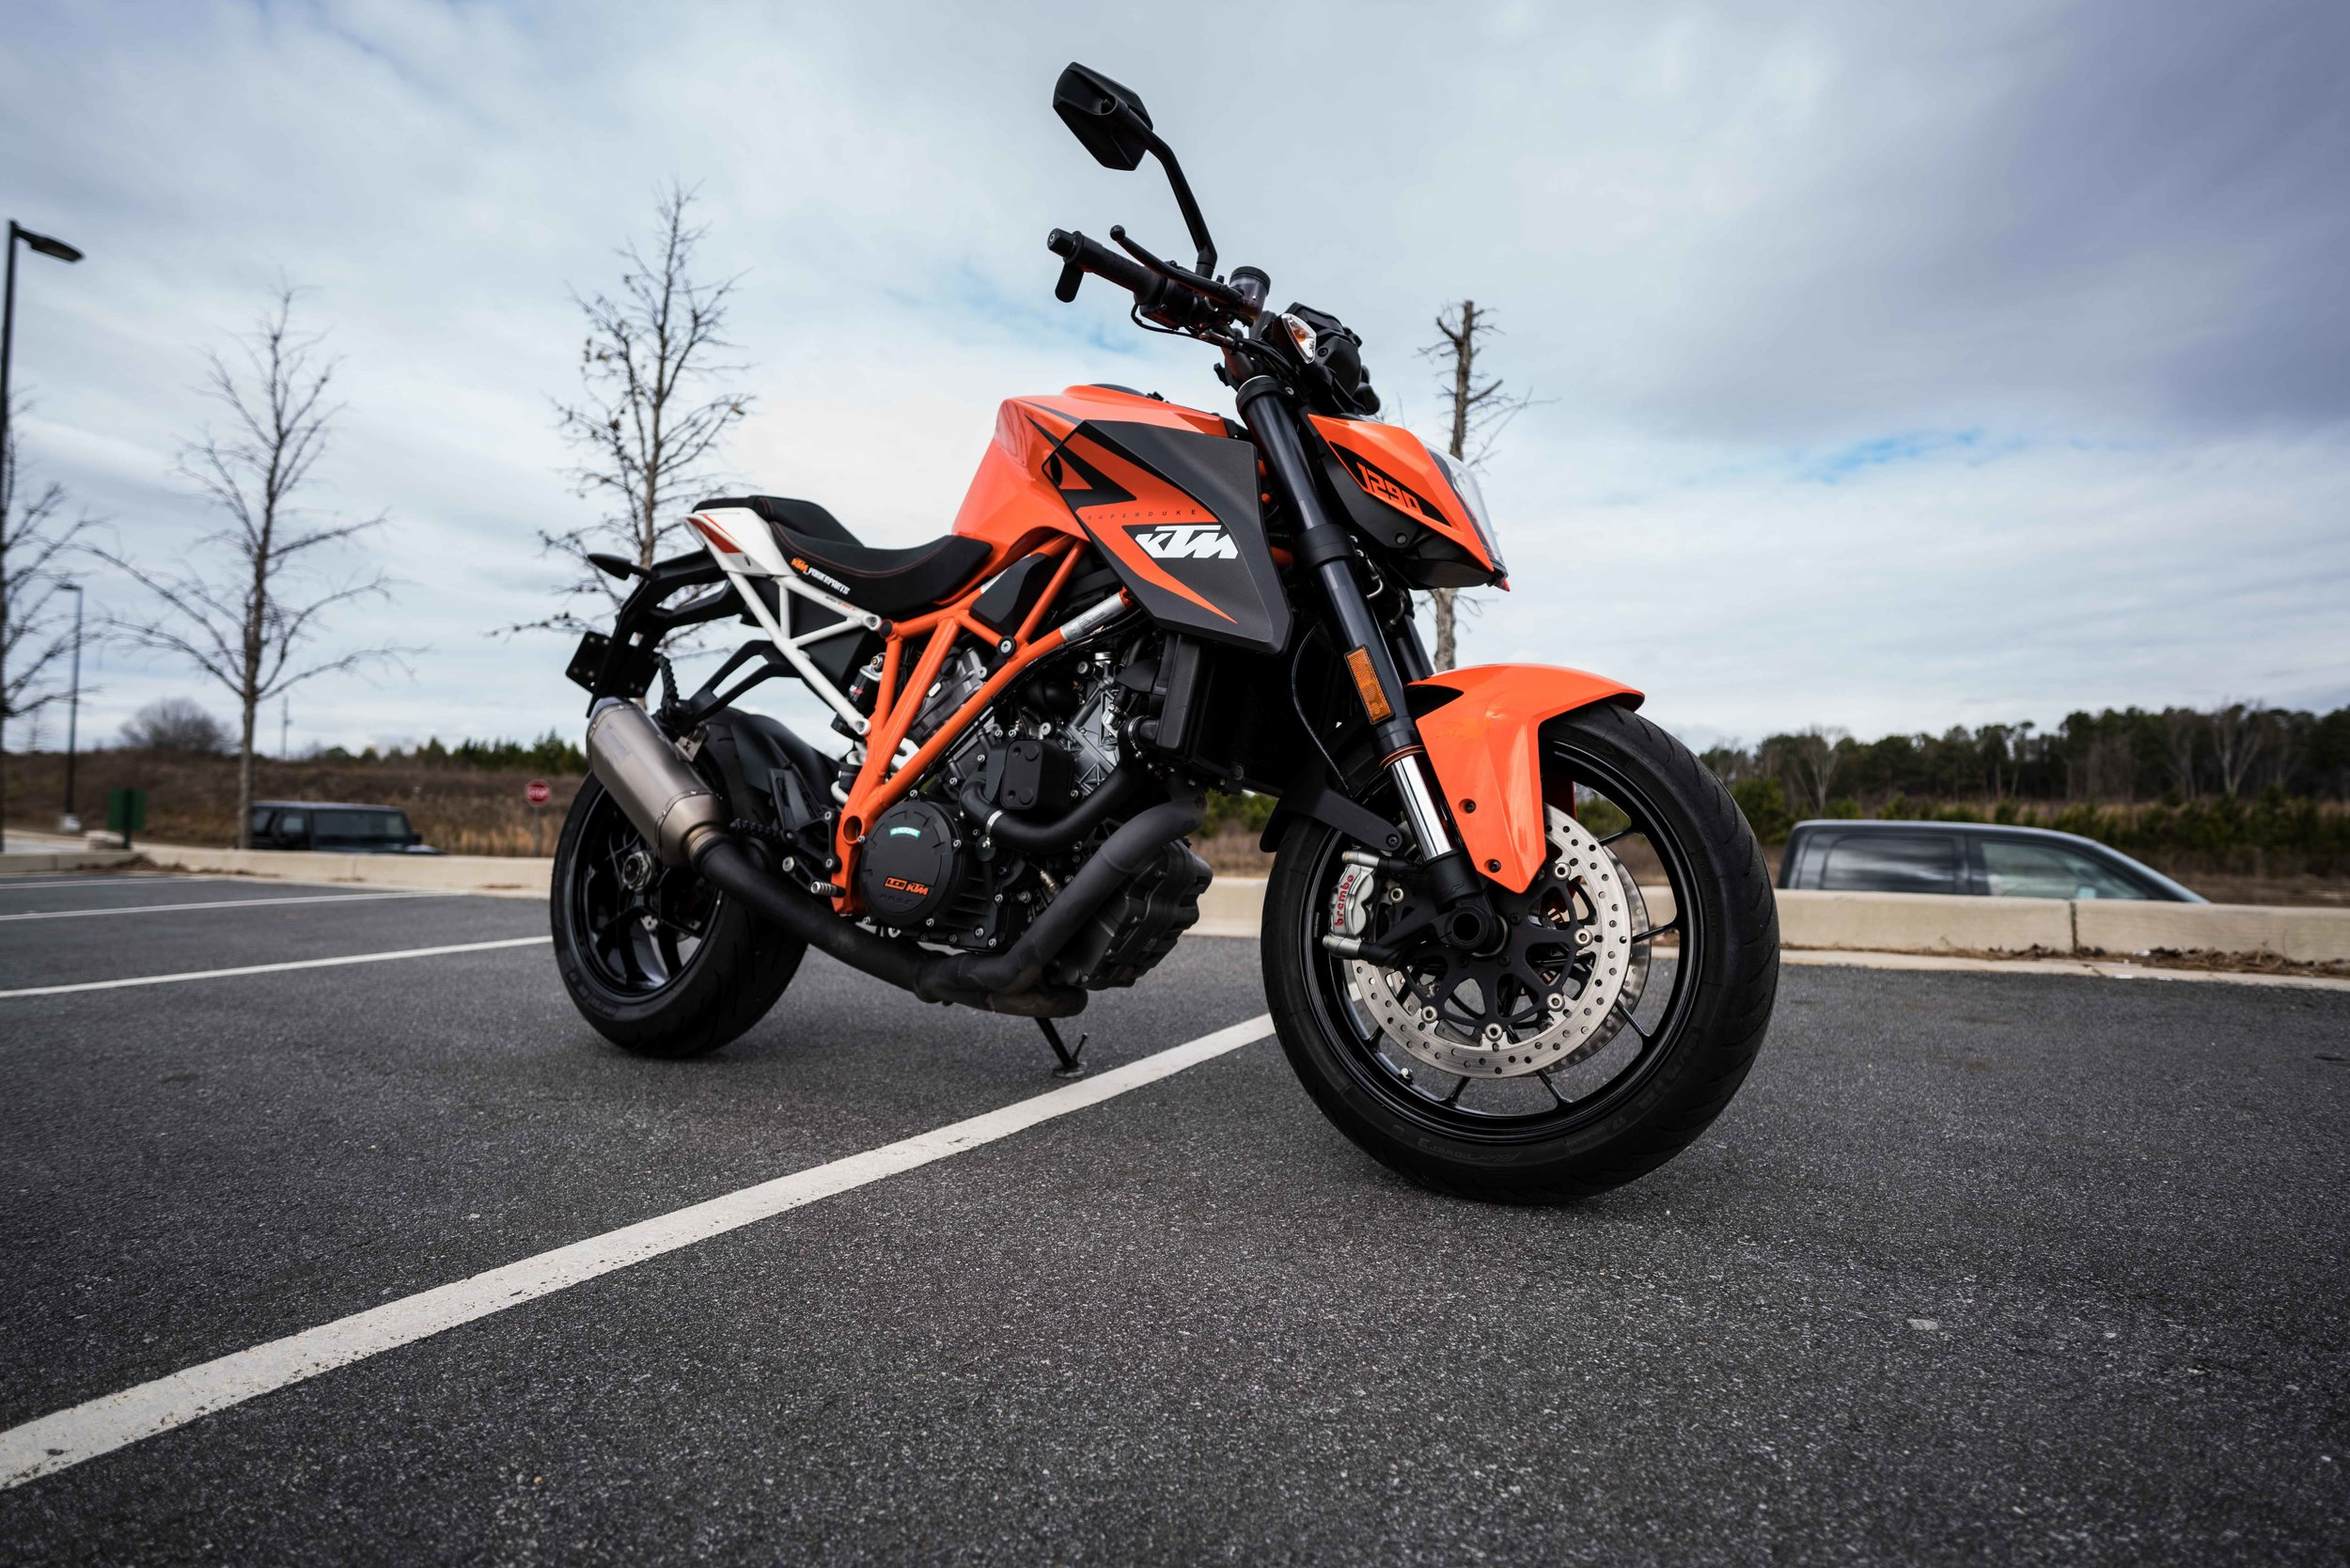 Superduke_FirstRide-12.jpg